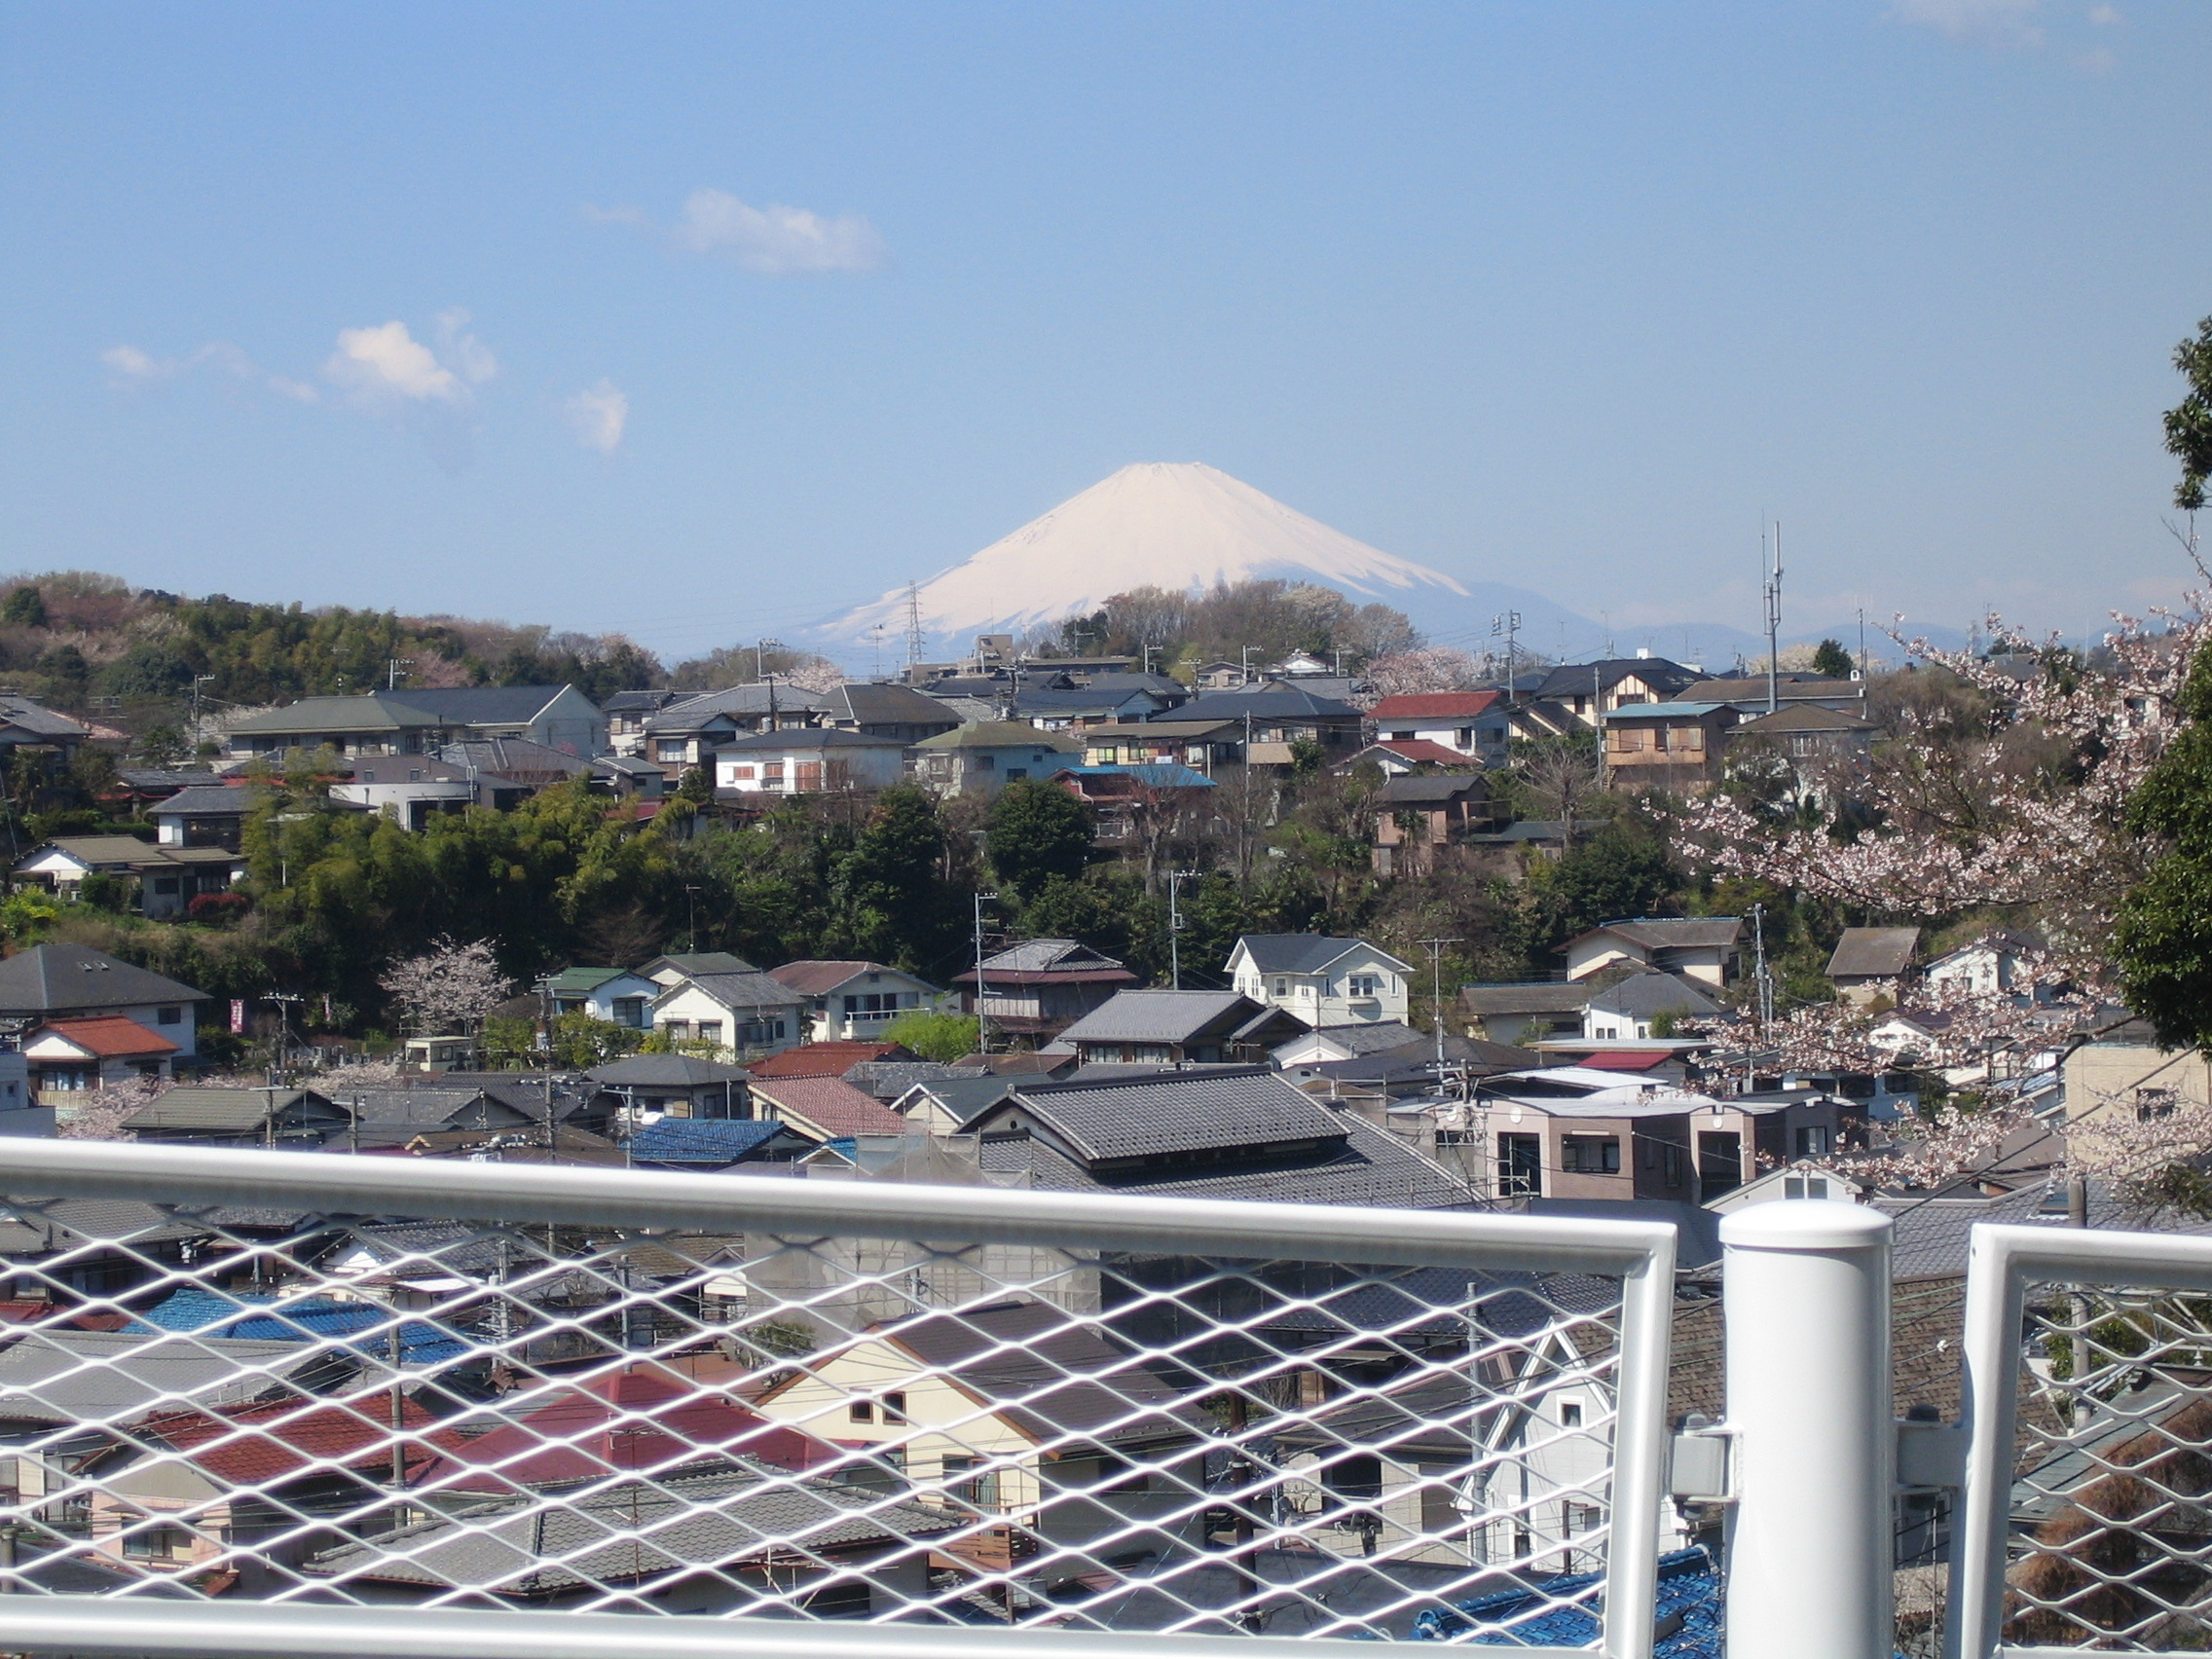 Fuji emerged only on the clearest of days.